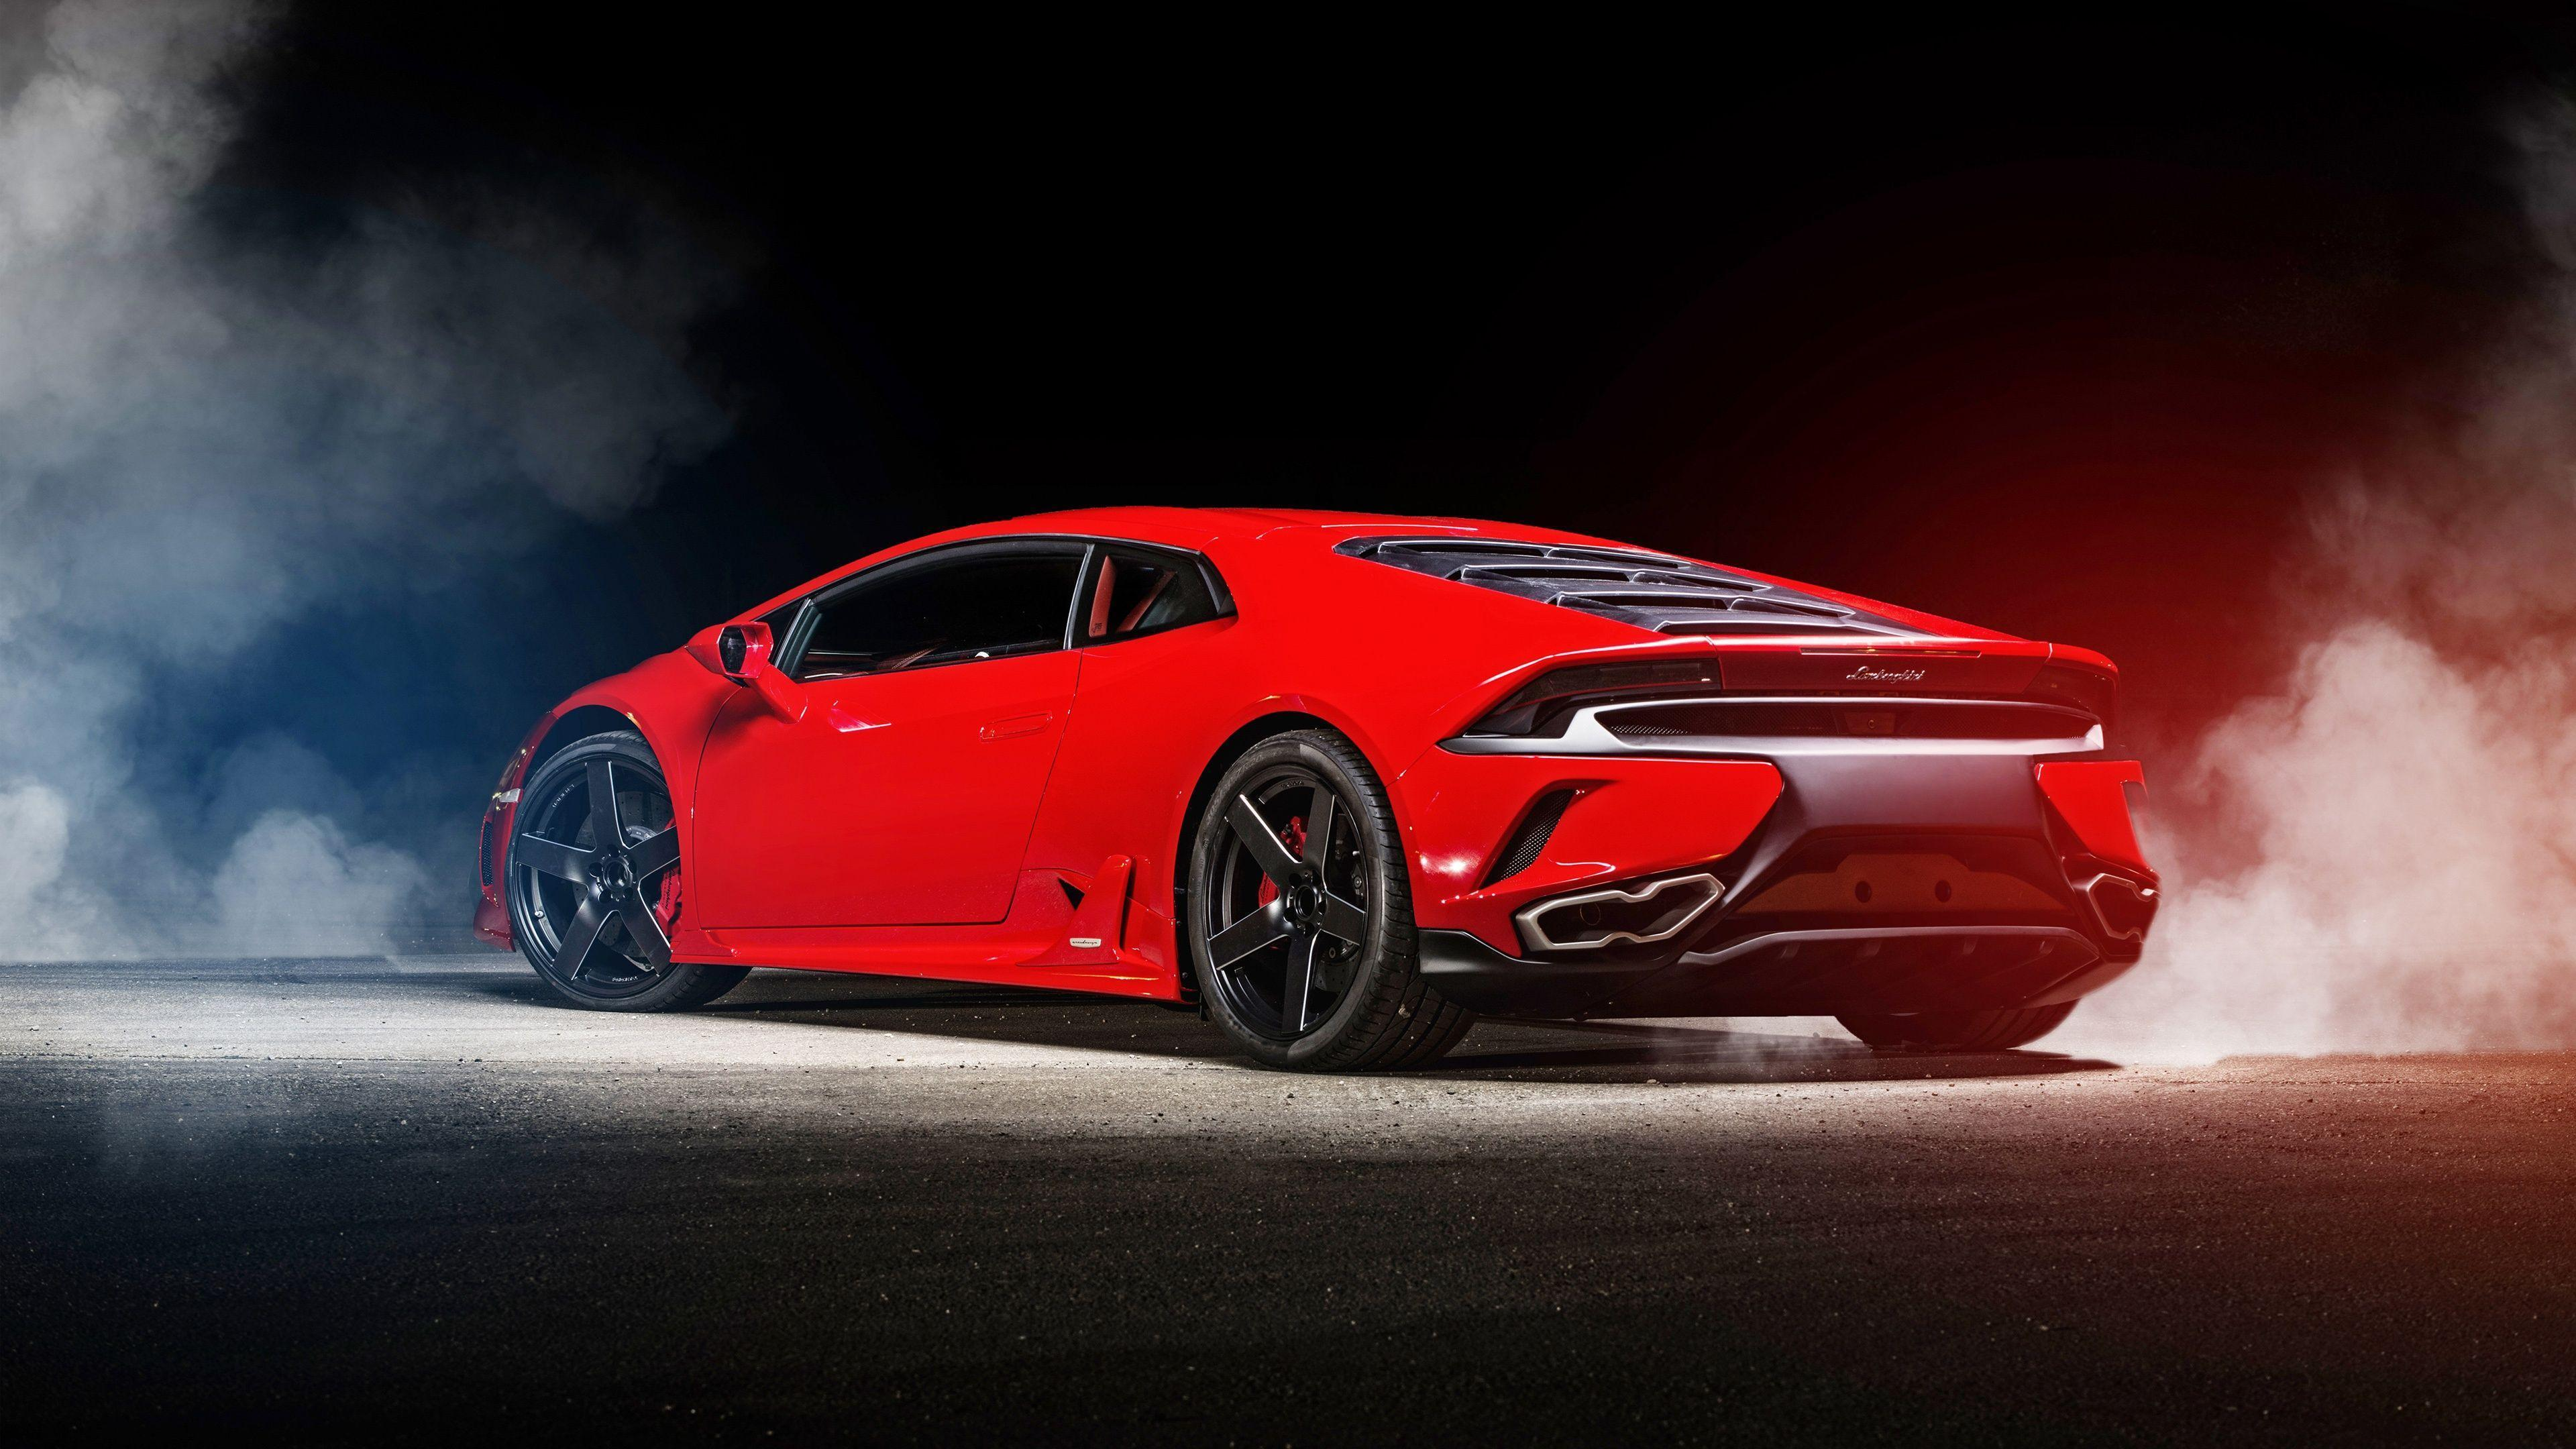 2015 ares design lamborghini huracan 4 wallpaper hd car wallpapers - Lamborghini Huracan Wallpaper